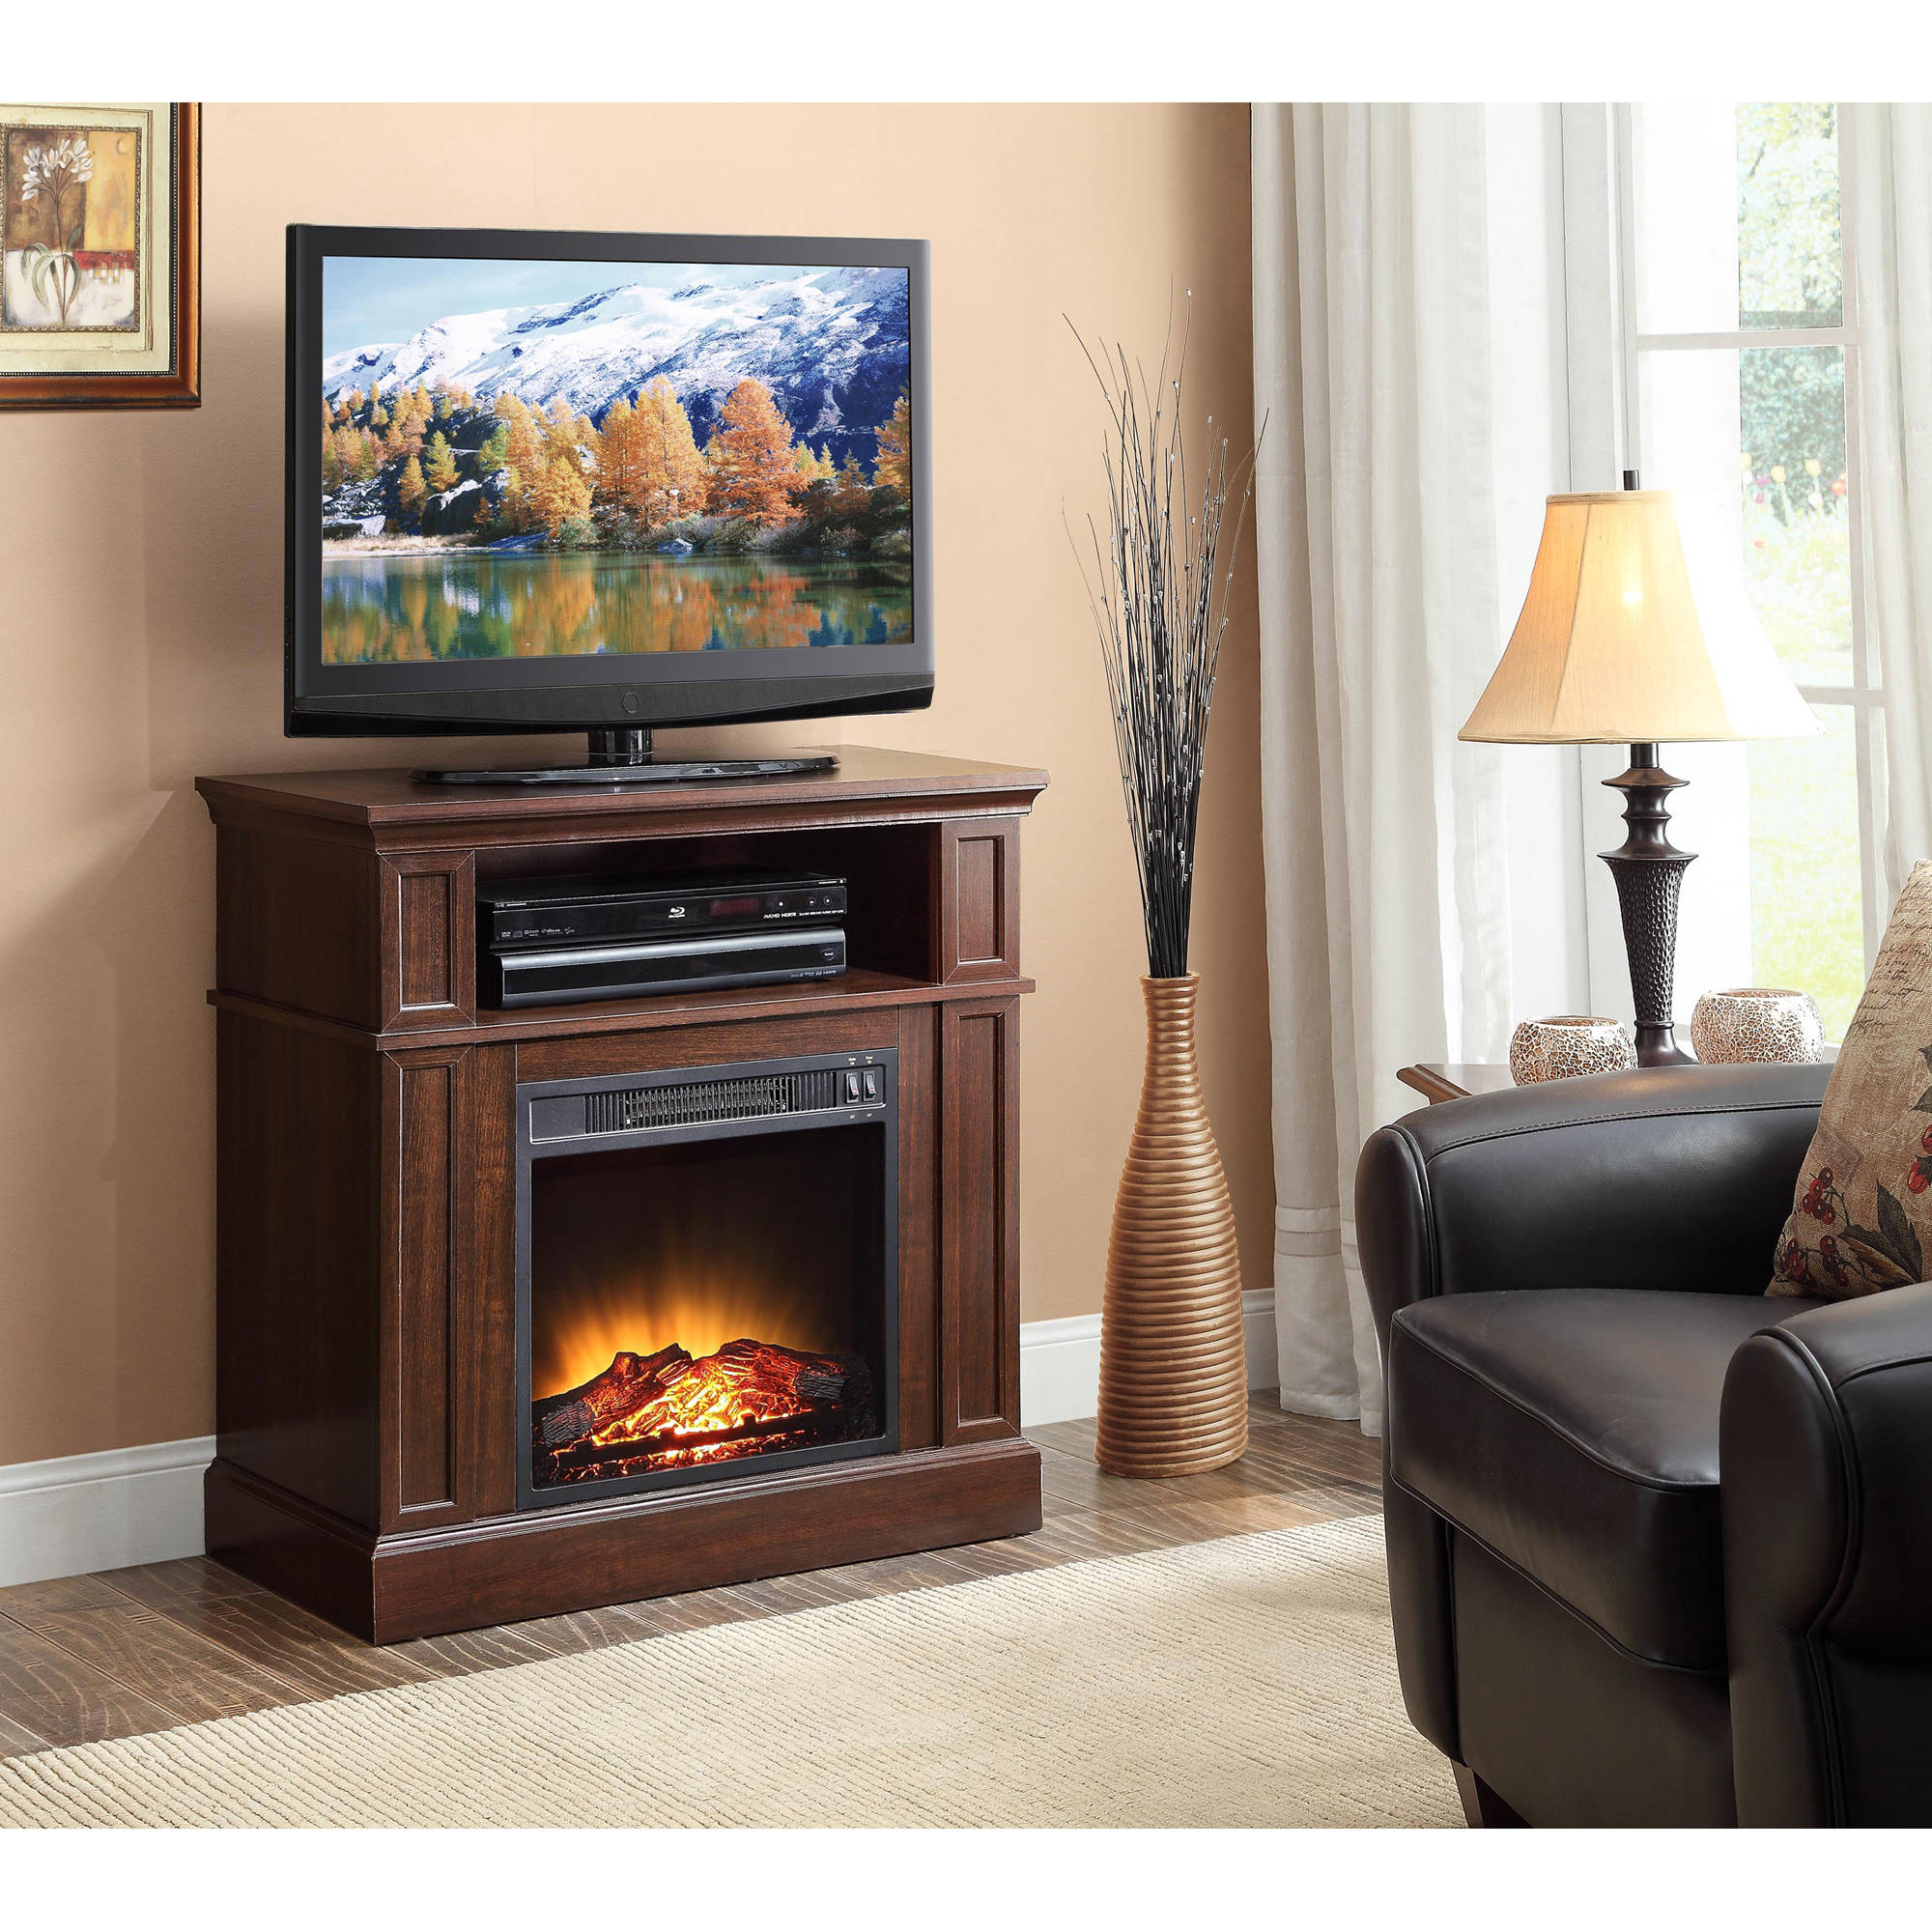 sauder palladia audio media tower  cherry walmart com corner tv fireplace entertainment center gas fireplace/tv entertainment center